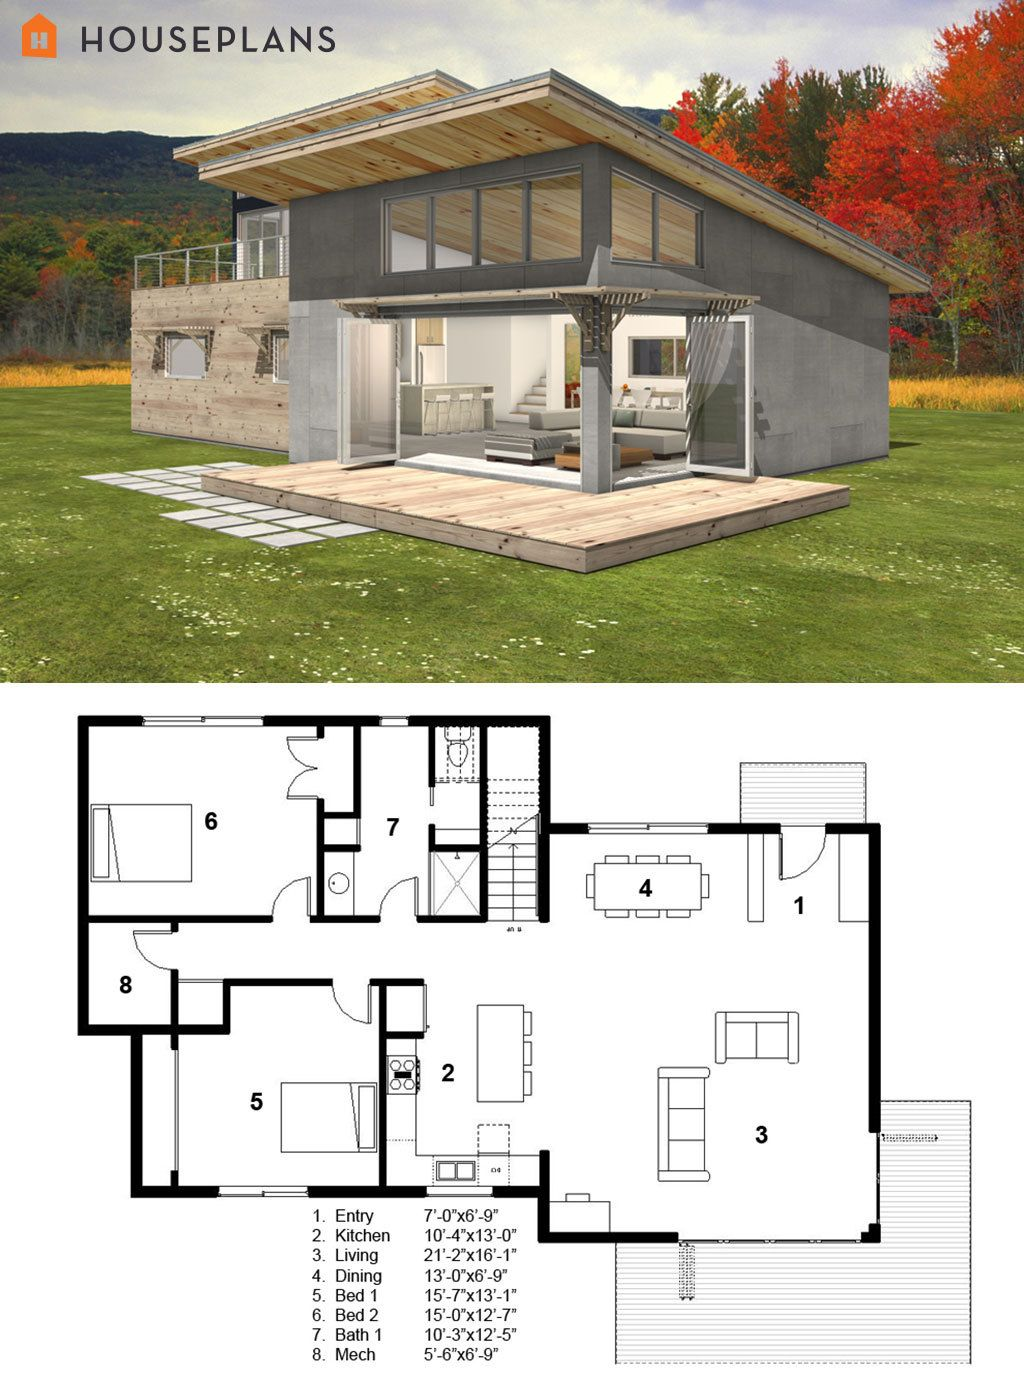 Small modern cabin house plan by freegreen energy for Modern bungalow floor plans